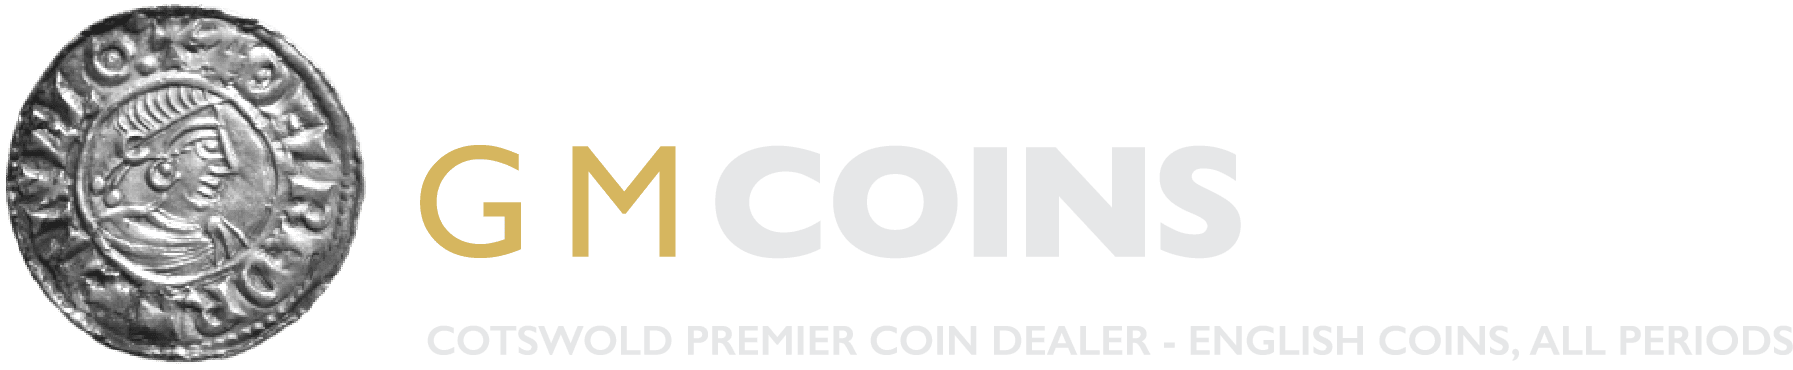 GM Coins | Premier UK Coin Dealers